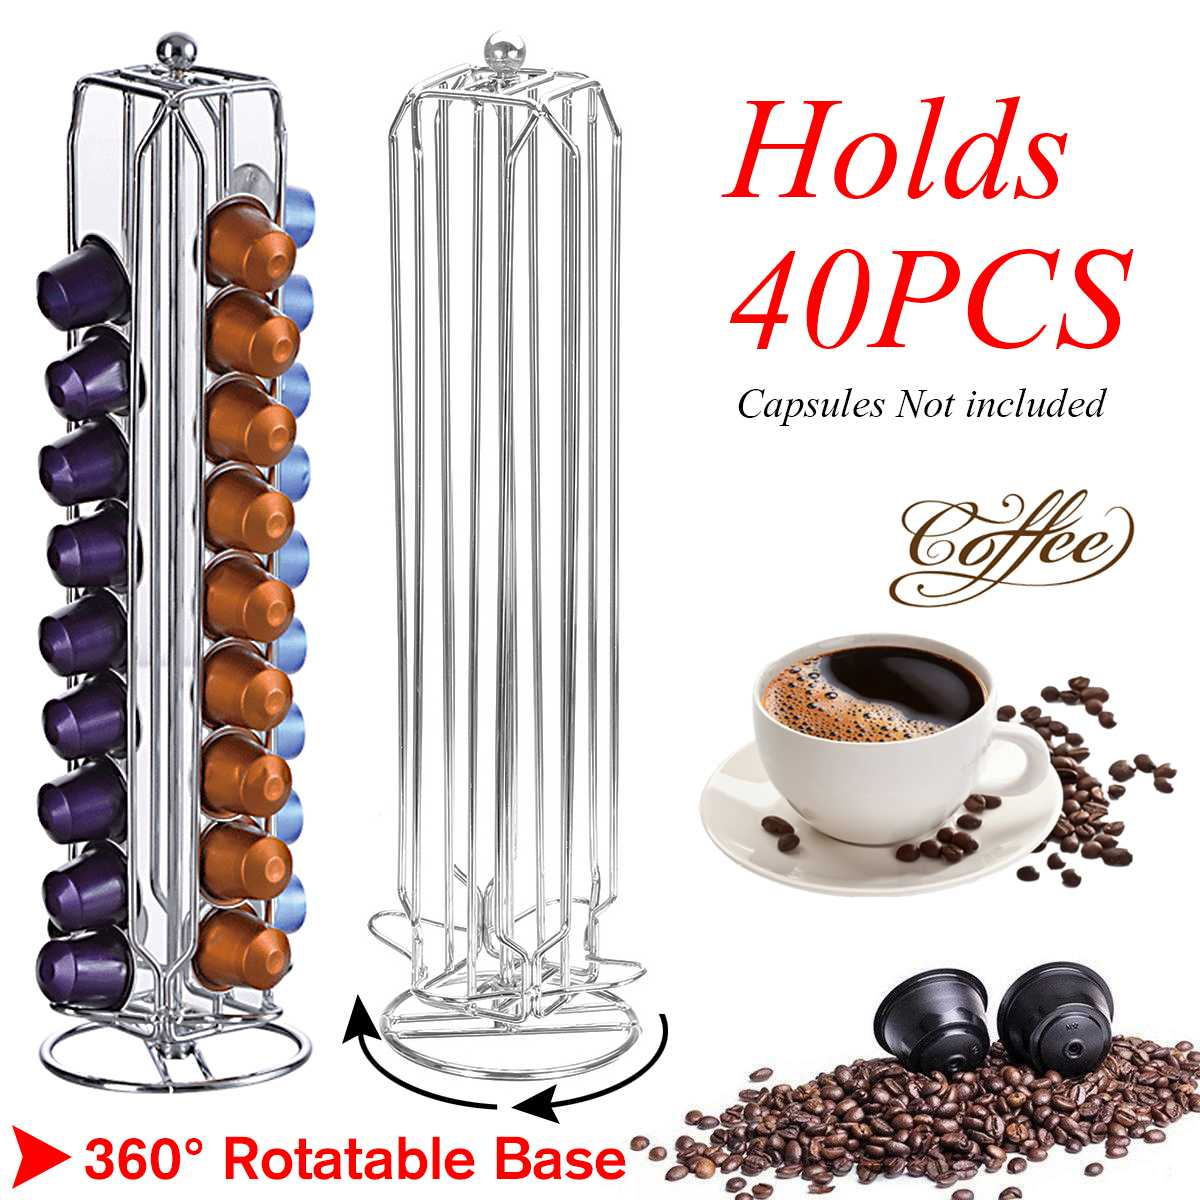 NEW Metal Coffee Pods Holder Iron Chrome Plating Stand Coffee Can Hold 40 PCS Coffee Capsule Storage Coffee Stand For Nespresso